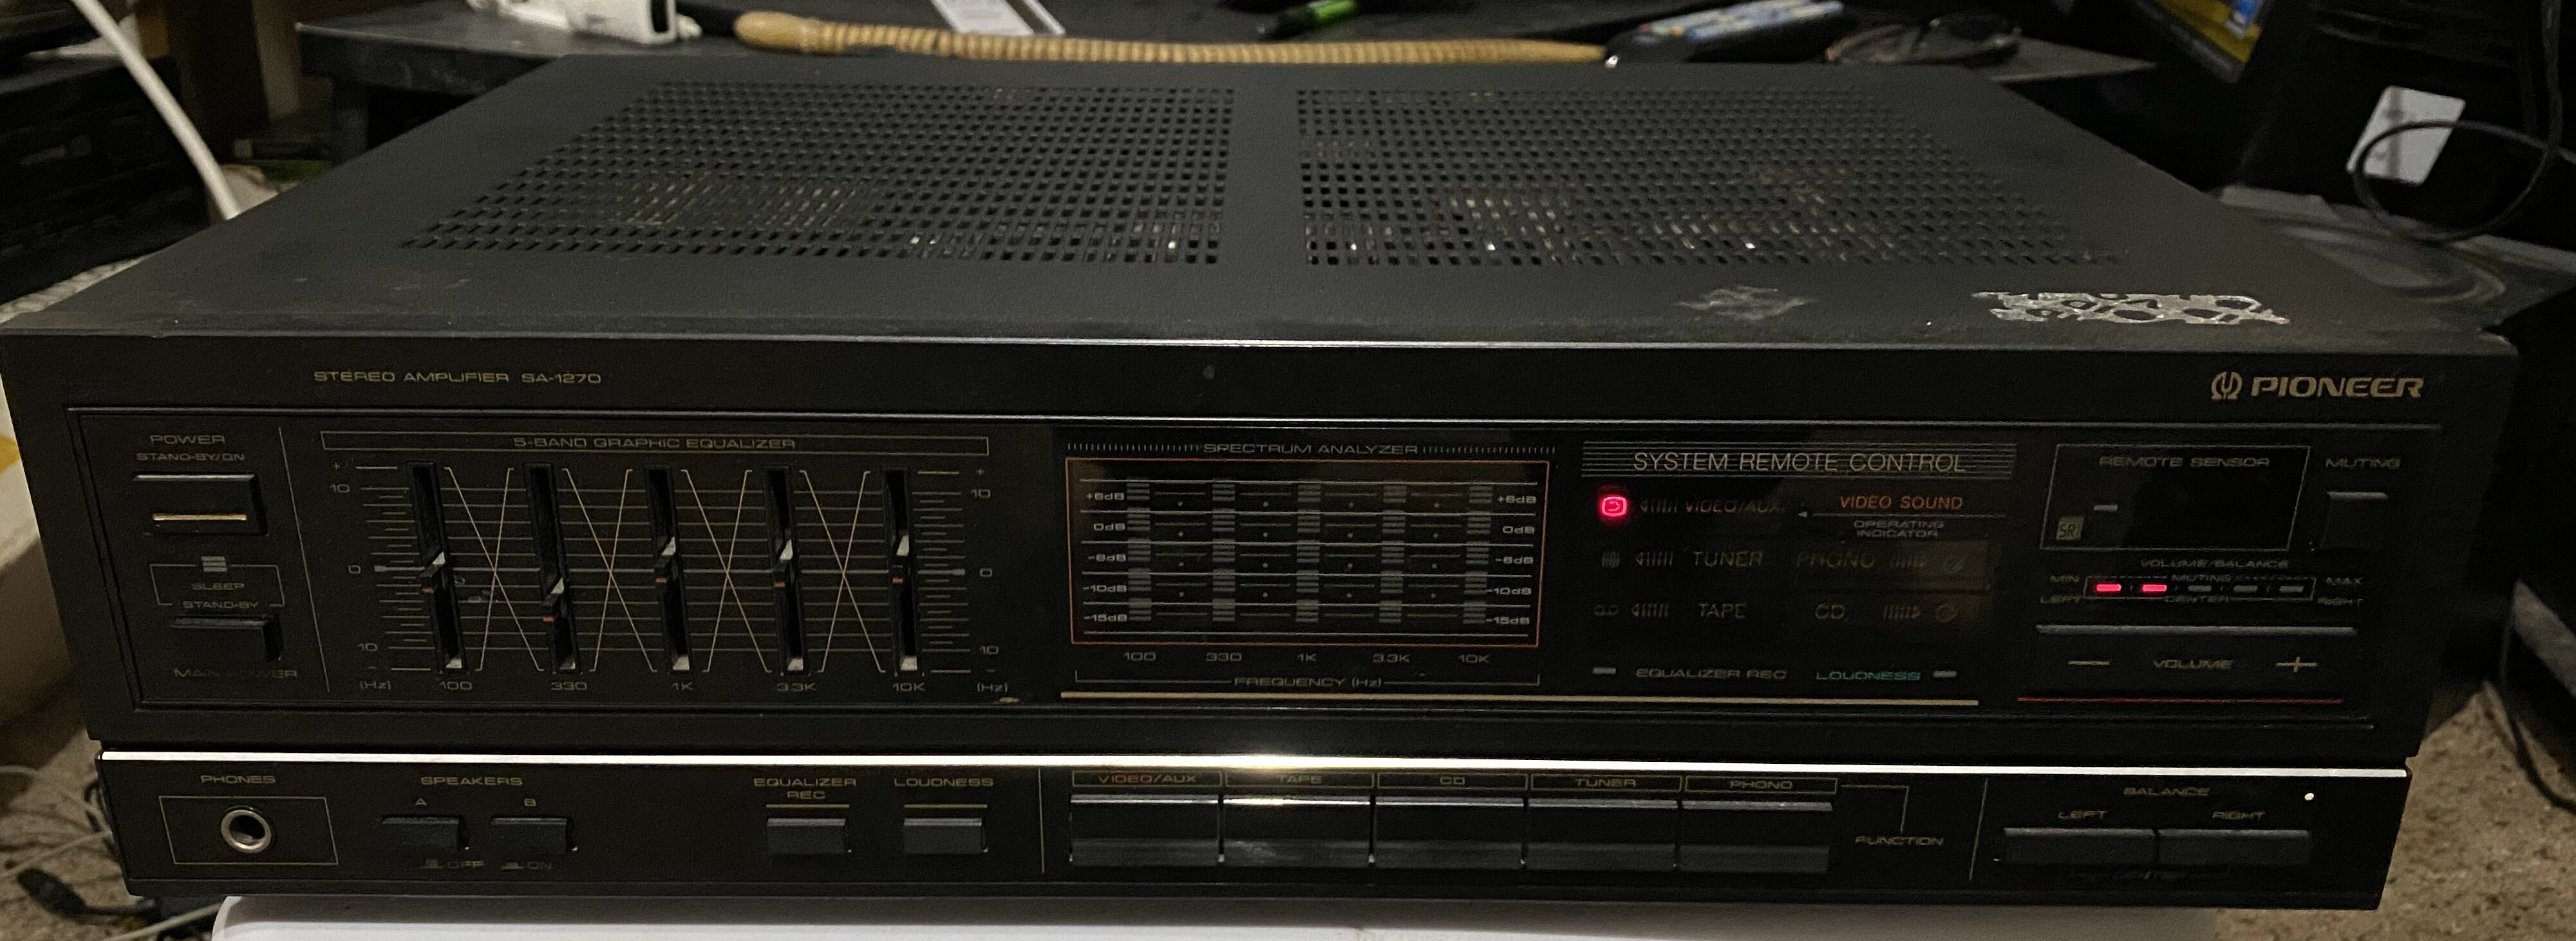 Pioneer SA 1270 integrated amplifier.